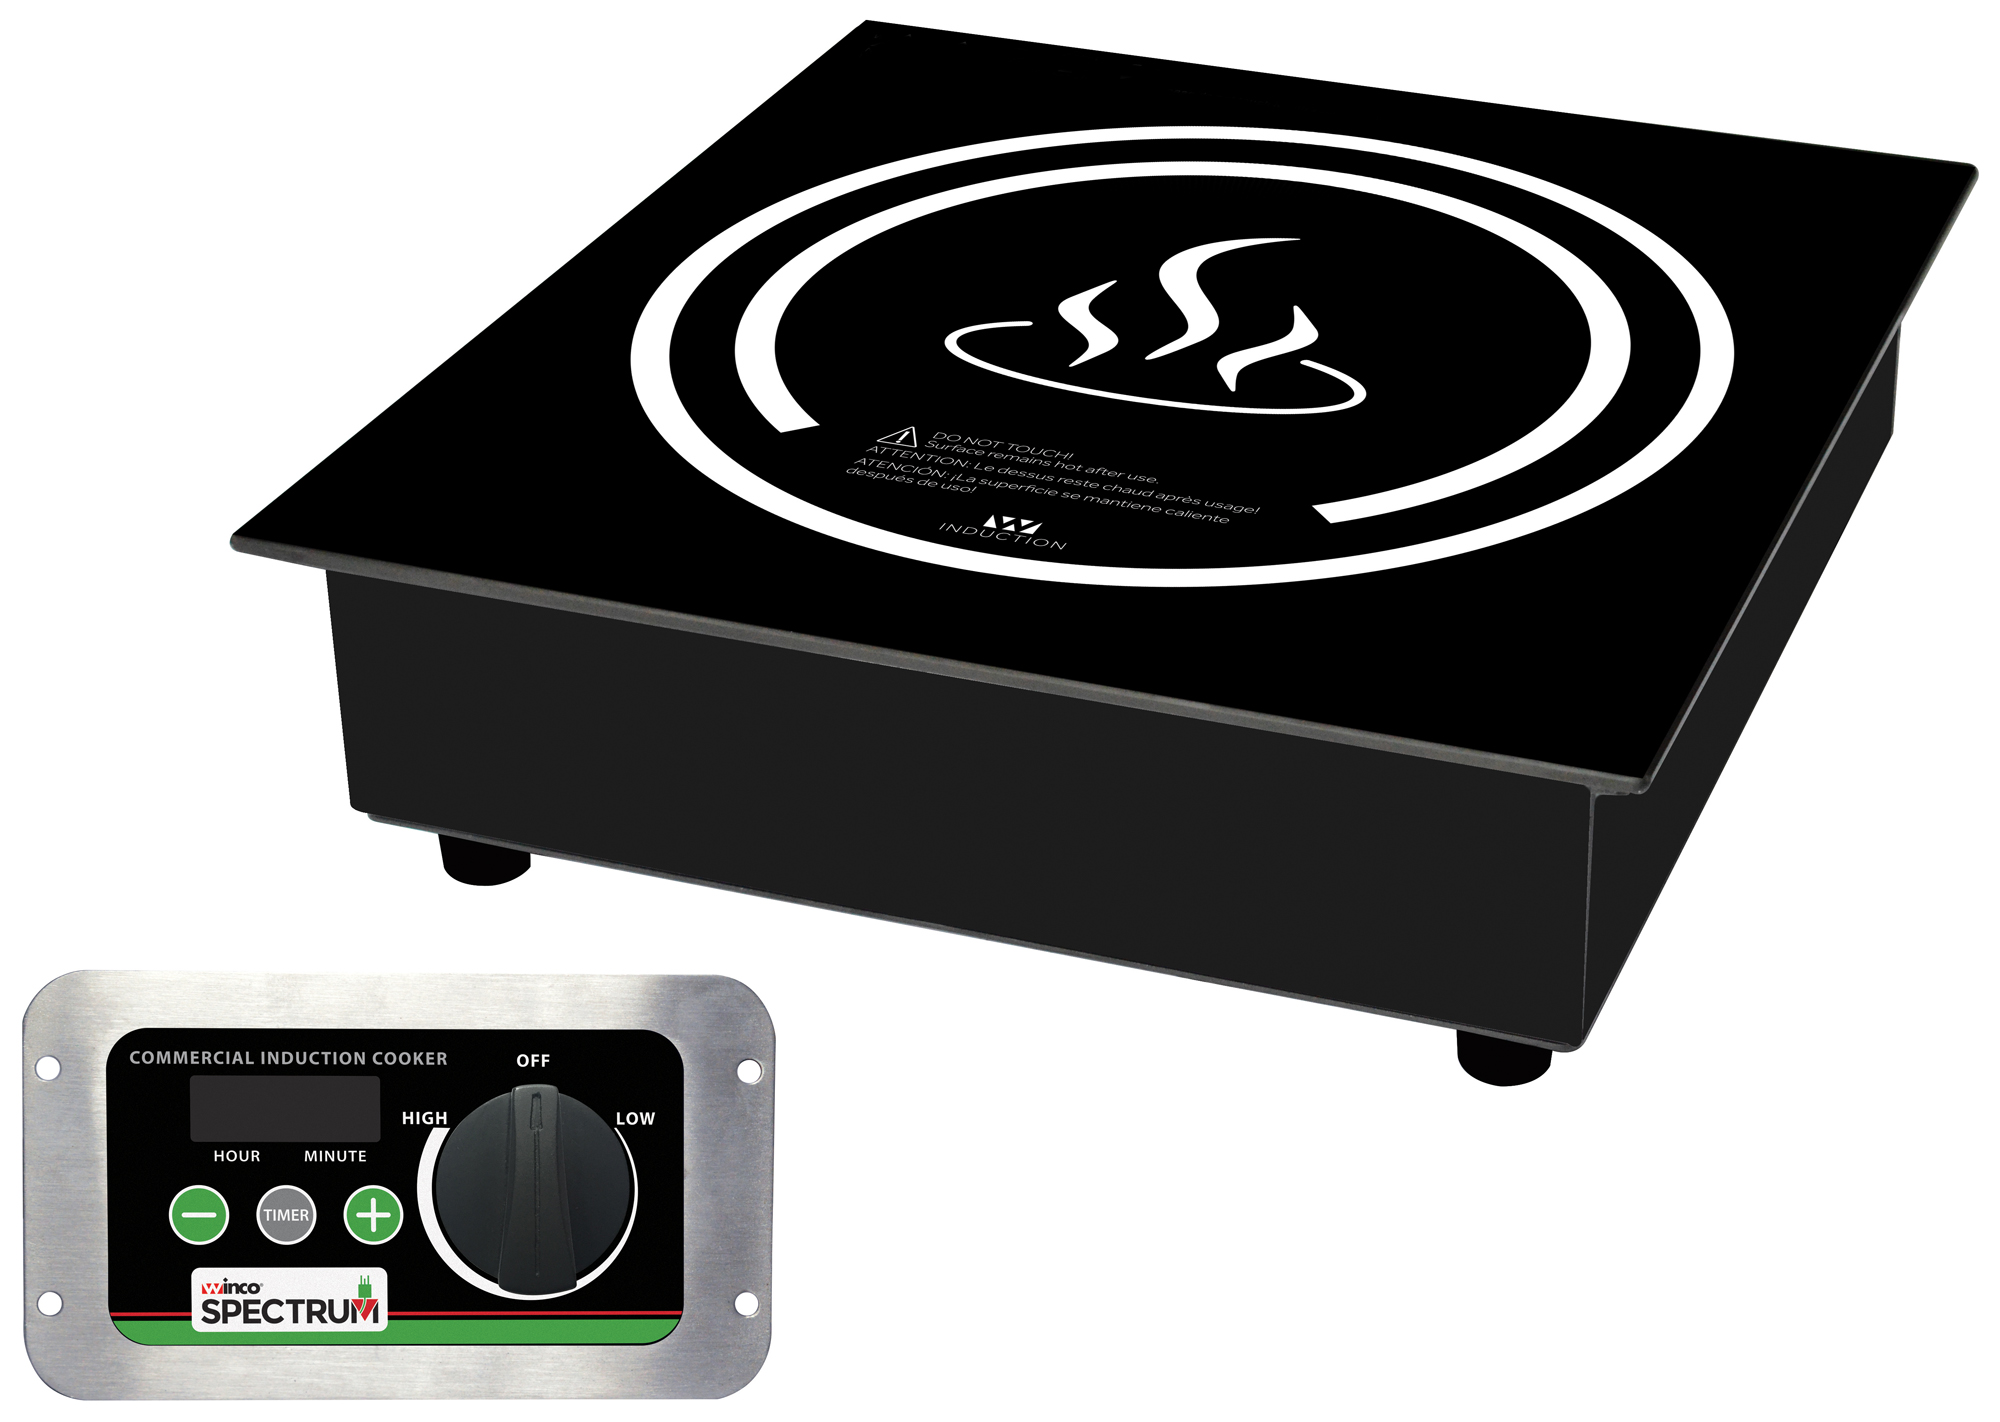 Winco EIDS-18C commercial drop-in induction cooker with nema 5-20p plug